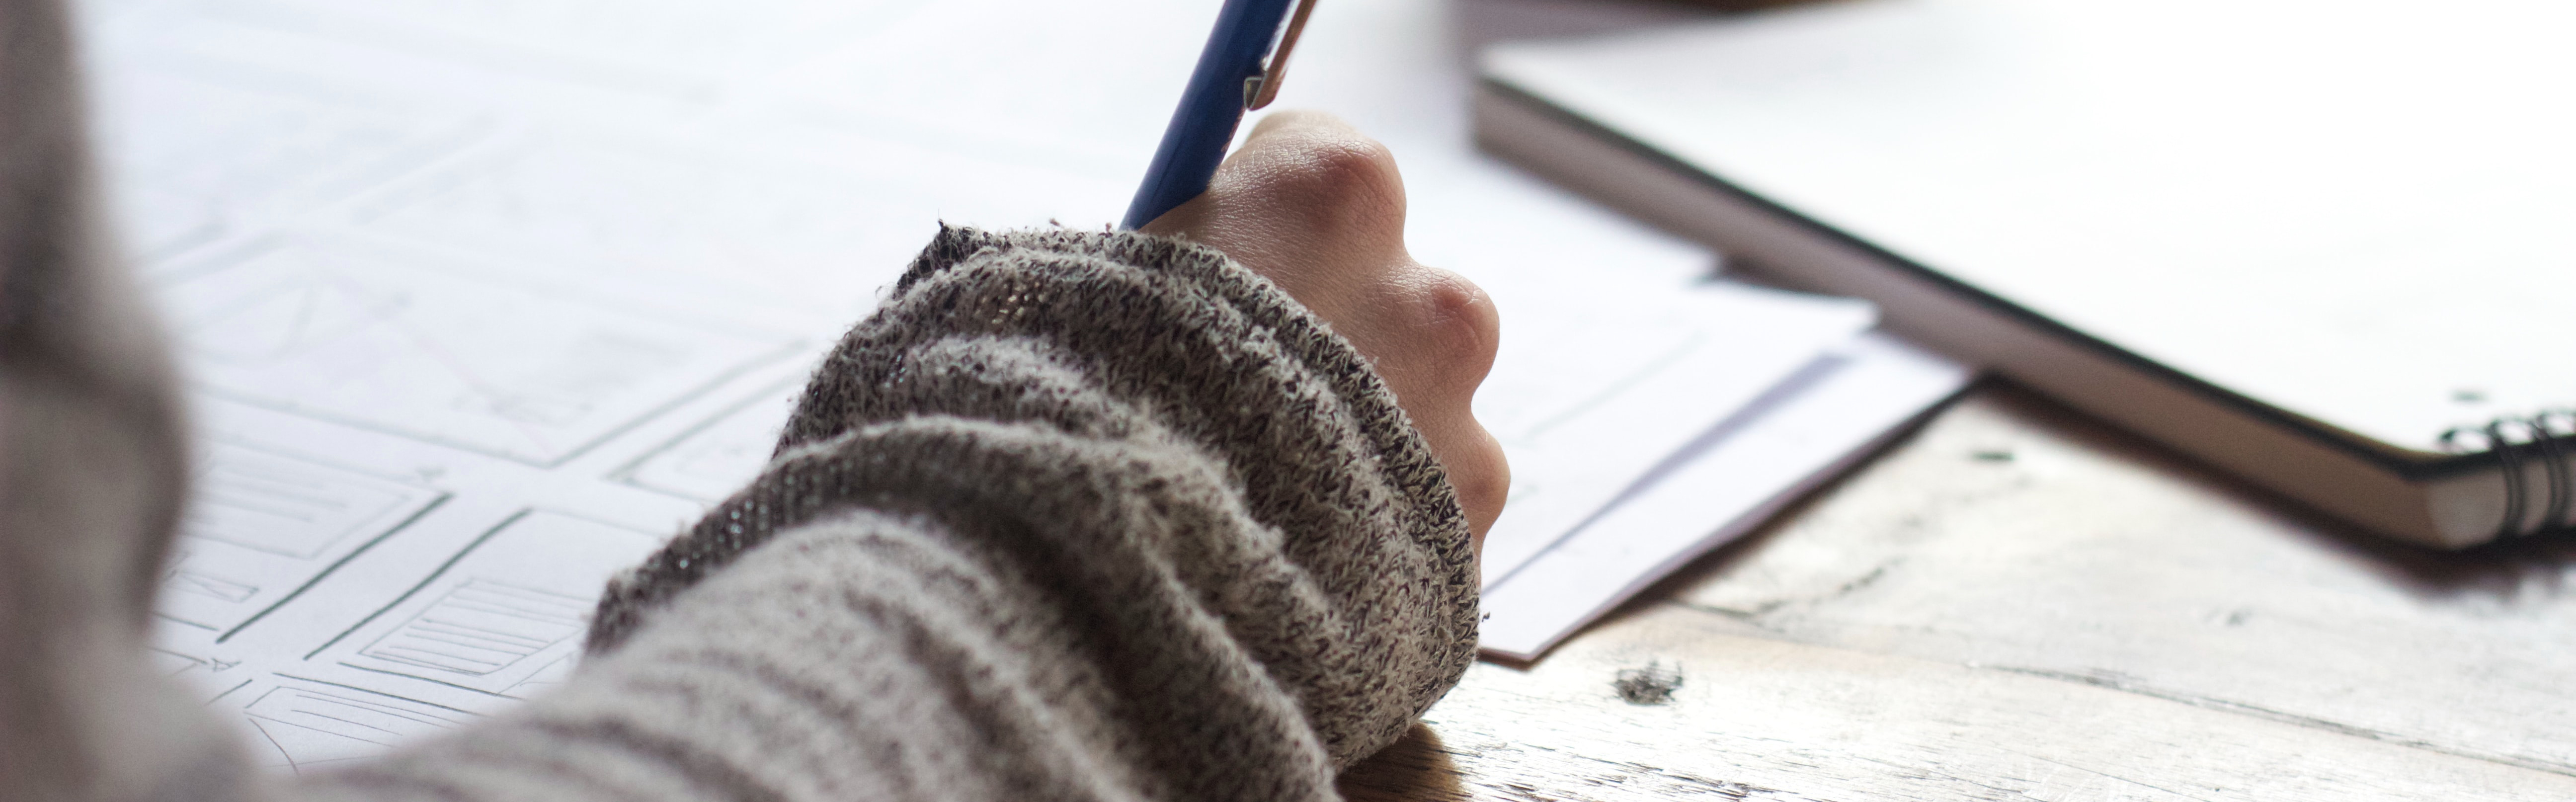 Photo of a hand holding a pen, writing and drawing at a desk